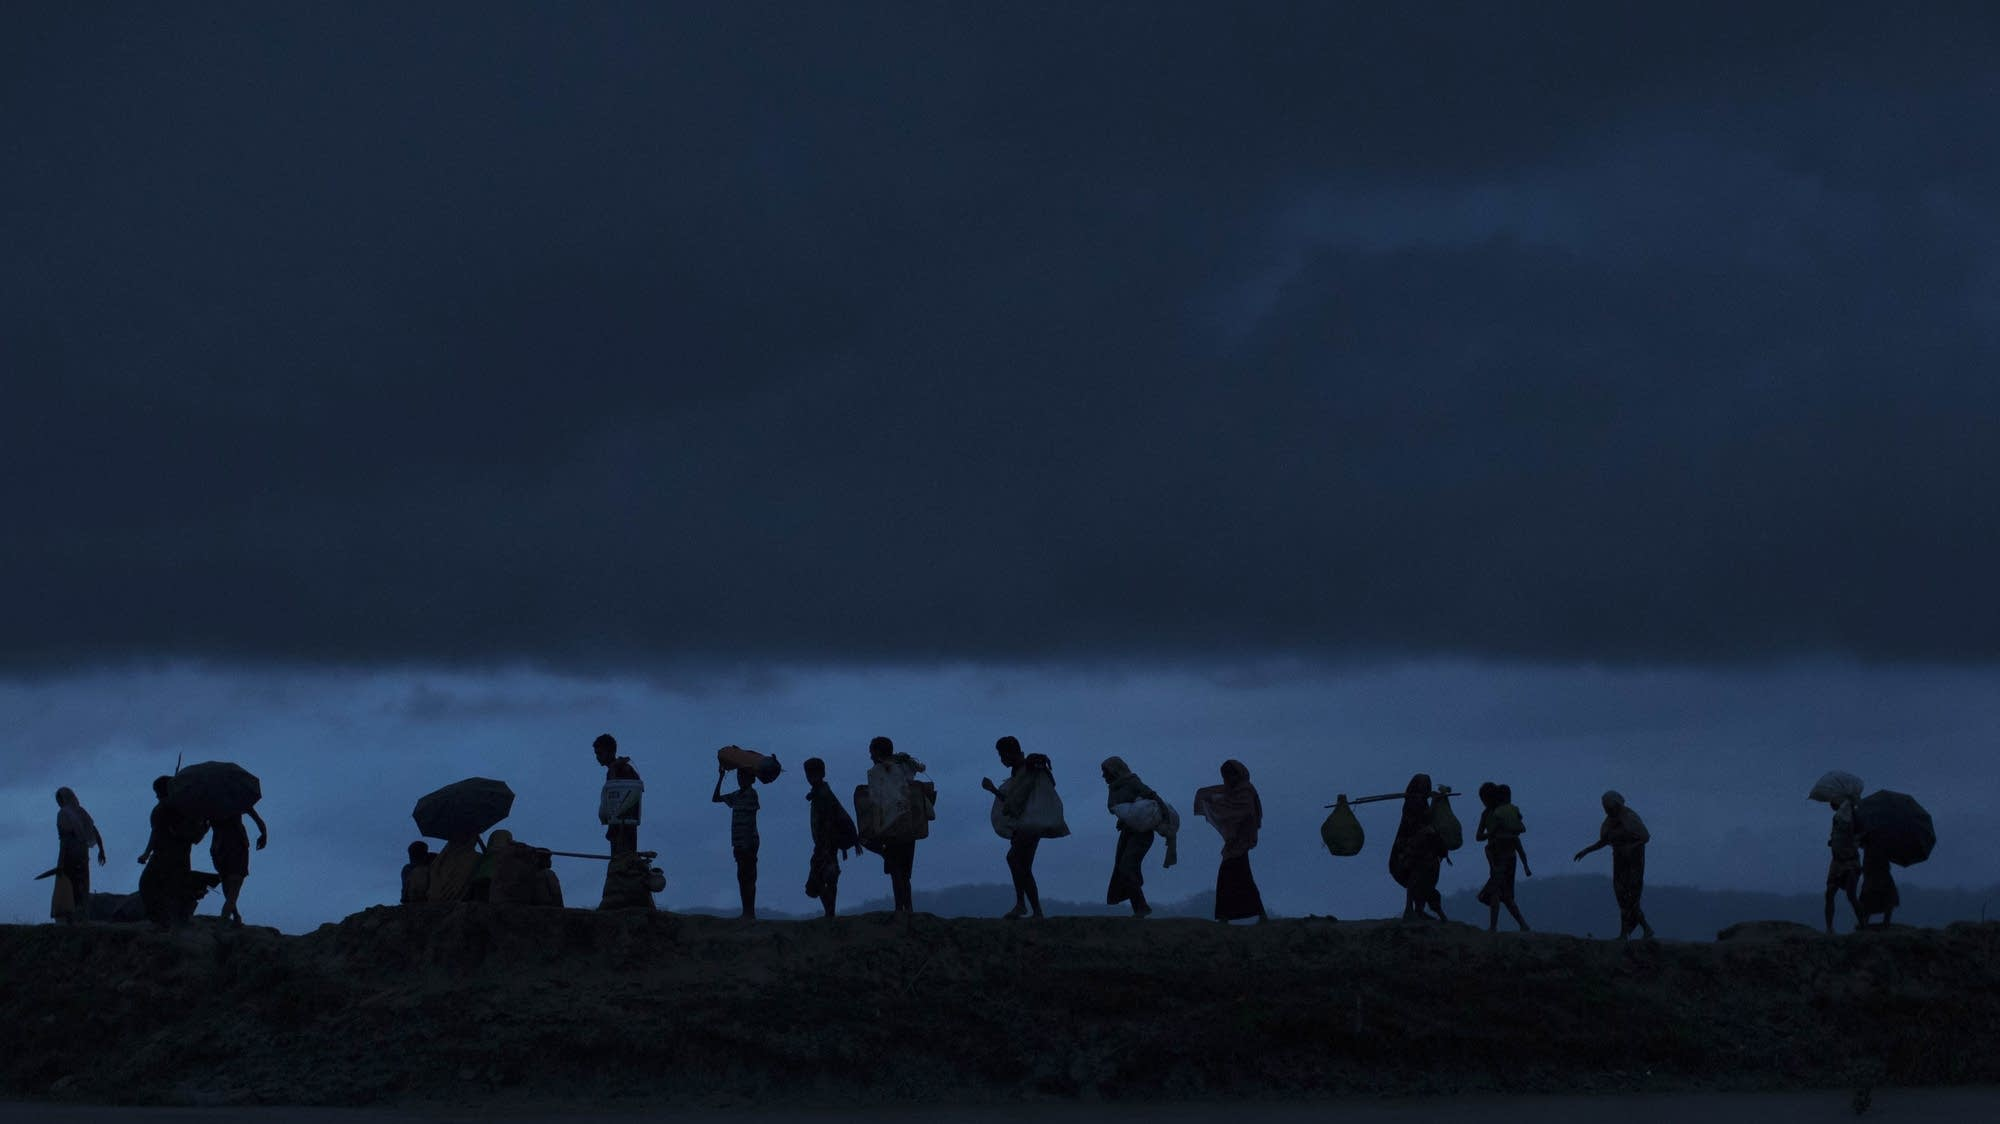 Rohingya refugees trek throughnBangladeshinpaddy fields at dusk